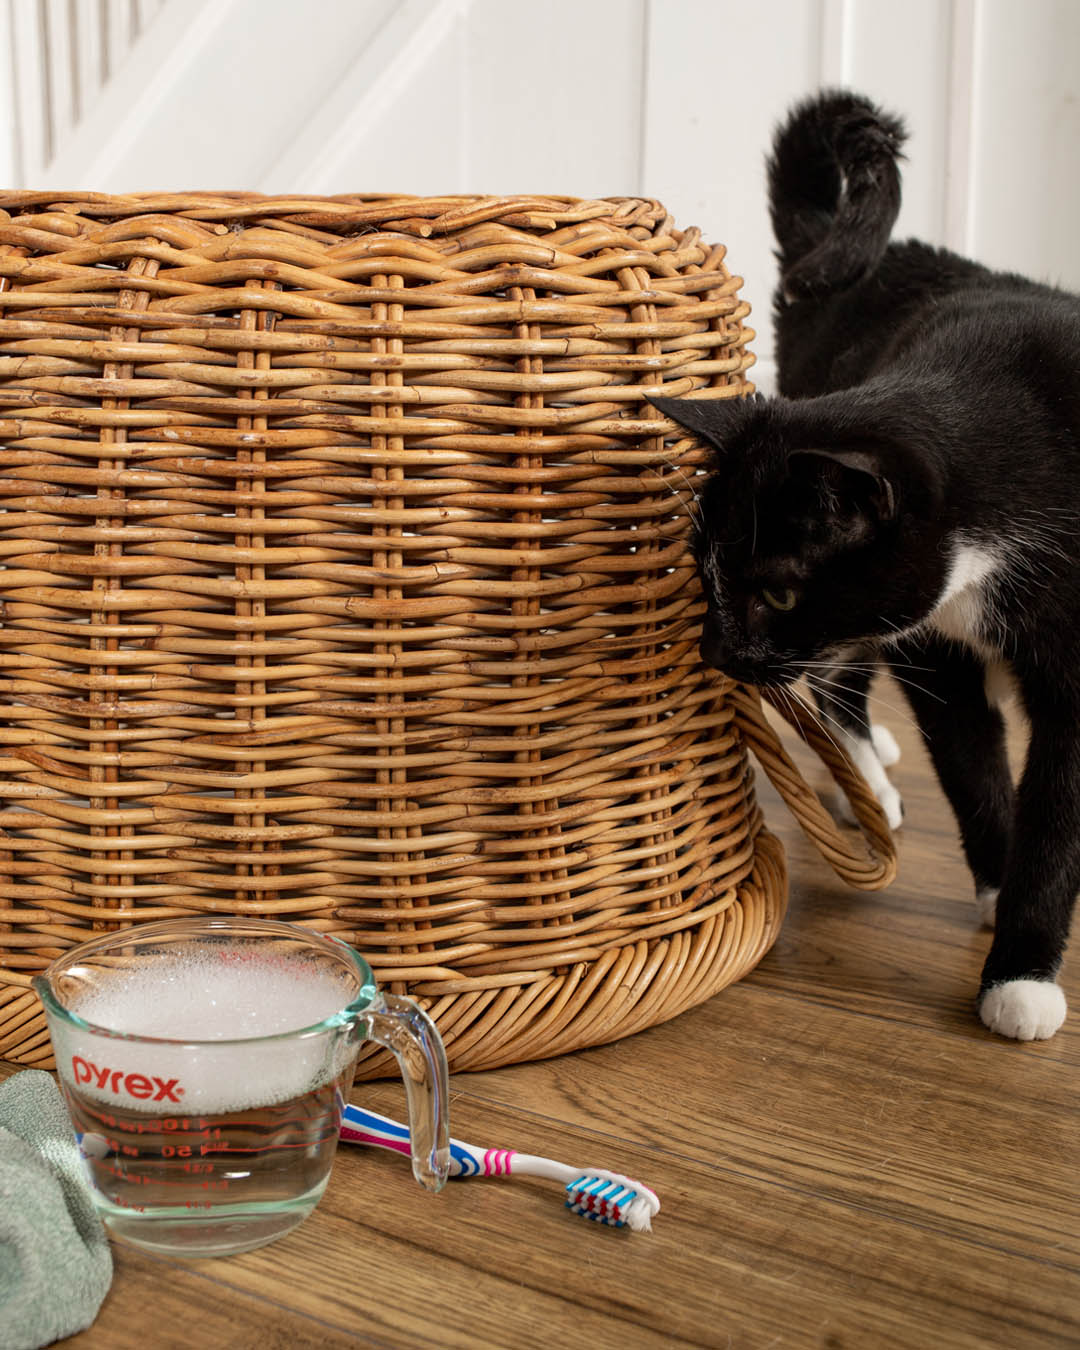 Wicker baskets add both beauty and functionality to a home and they're one of my favourite home decor items ever. They can also collect a lot of dust and grime over the years when you look at them closely! Here's how to clean wicker baskets!